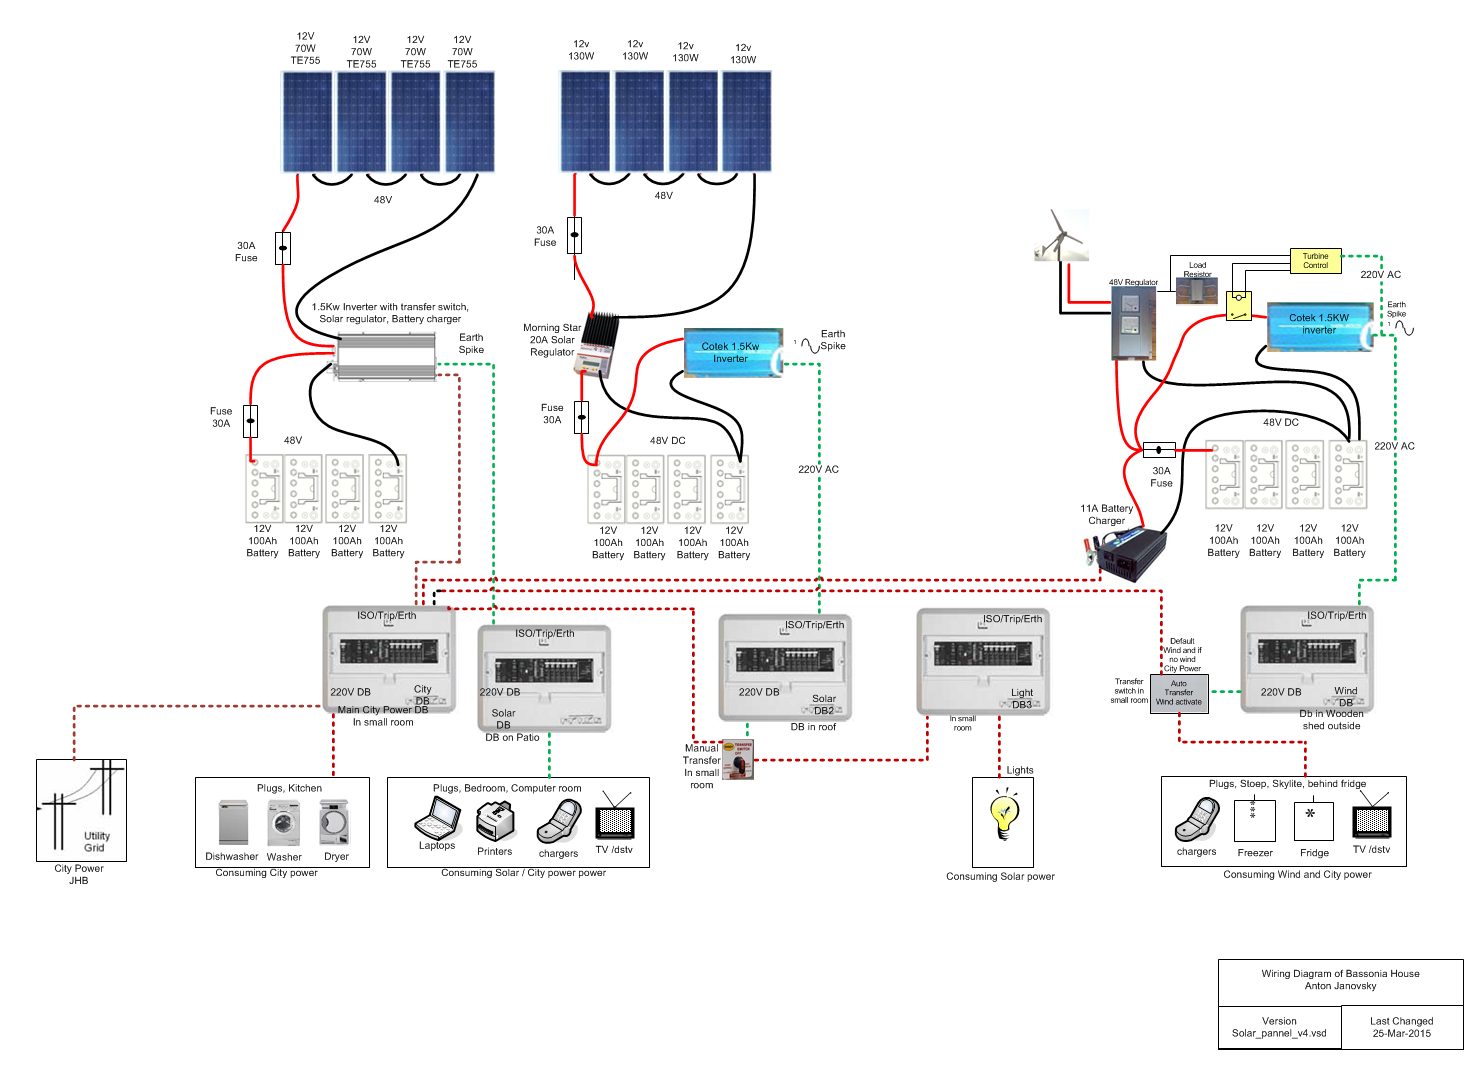 Cotek Inverter Wiring Diagram : Anton janovsky kw wind turbine in bassonia johannesburg